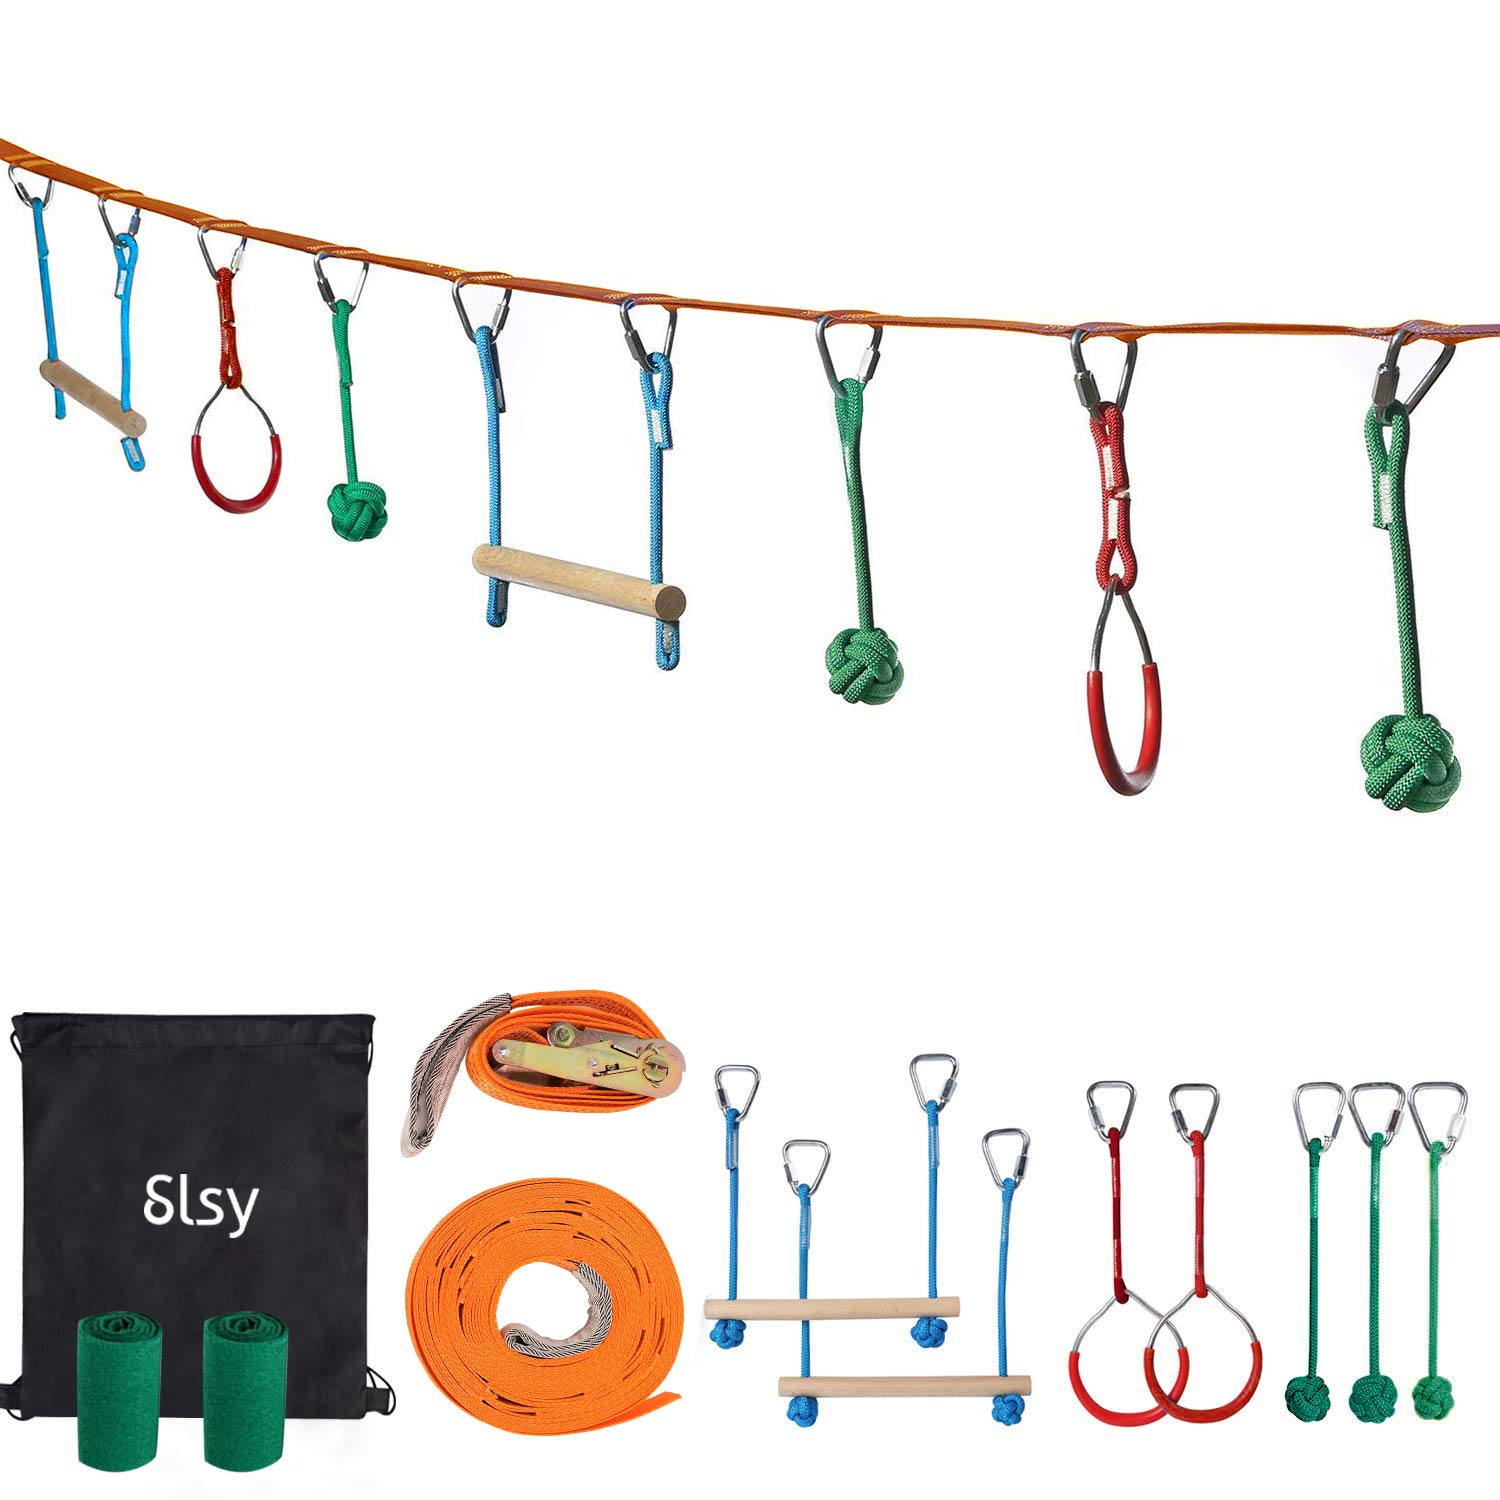 Slsy Ninja line Monkey Bar Kit 40 Foot, Kids Slackline Hanging Obstacle Course Set Warrior Training Equipment for Backyard Outdoor Playground, with Gym Rings, 440lb Capacity, Carrying Bag by Slsy (Image #1)